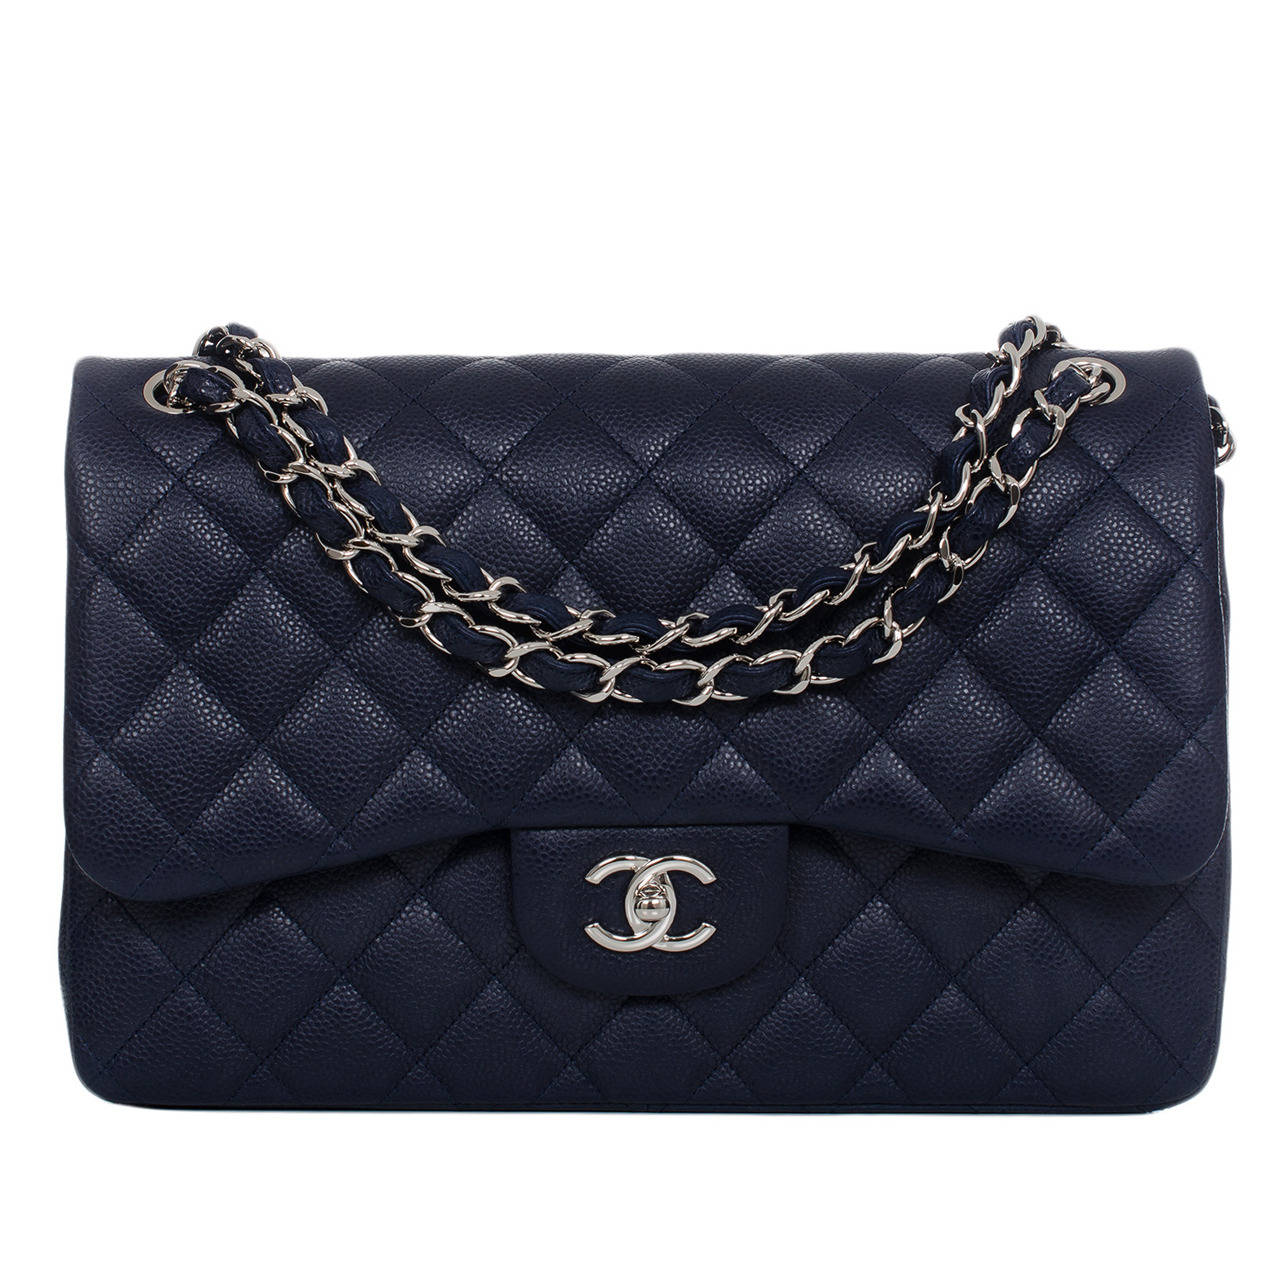 67b9abbb1cea Chanel Navy Quilted Caviar Jumbo Classic 2.55 Double Flap Bag at 1stdibs